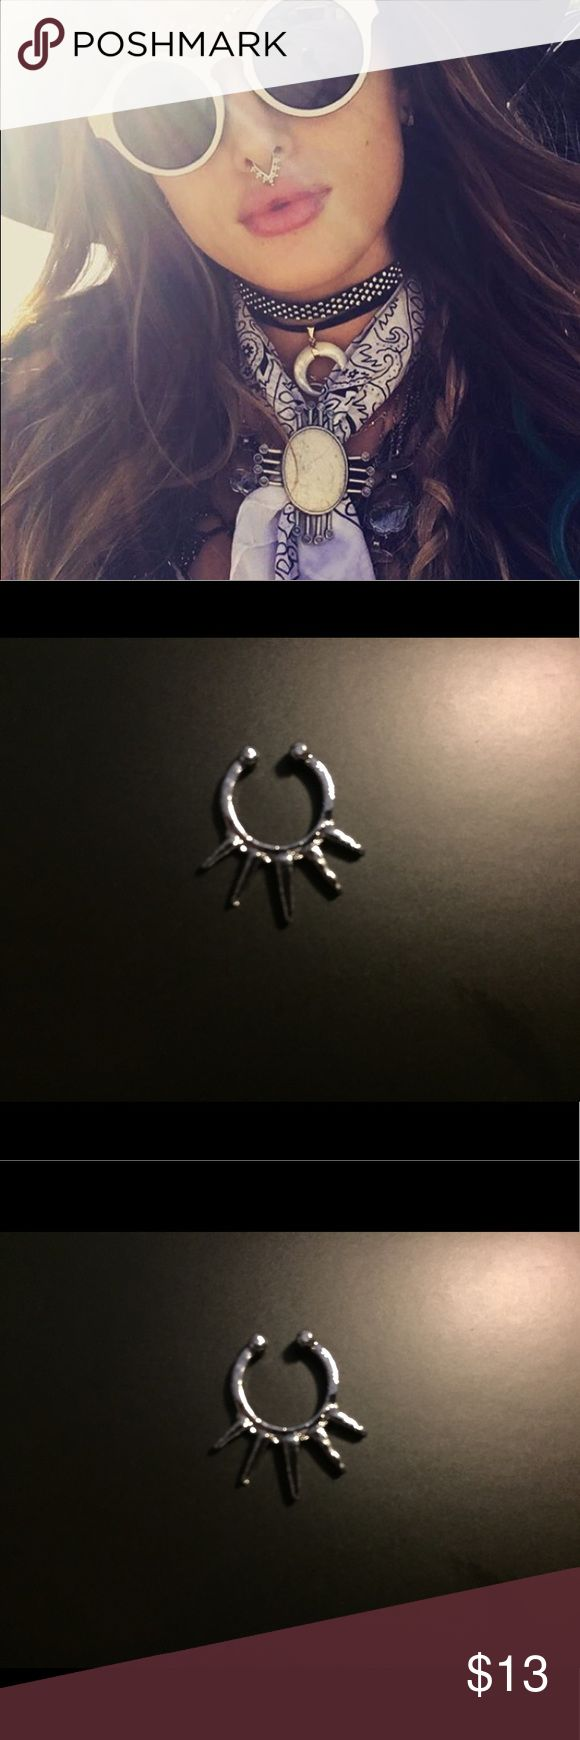 """Silver Fake Septum/ Bull Nose Ring- Spikey This new """"it girl"""" accessory piece is both sexy and cool. Great quality ring for the price. Brand new and fully adjustable. Will be stocking many styles so message if you want to bundle any! Free People Accessories"""